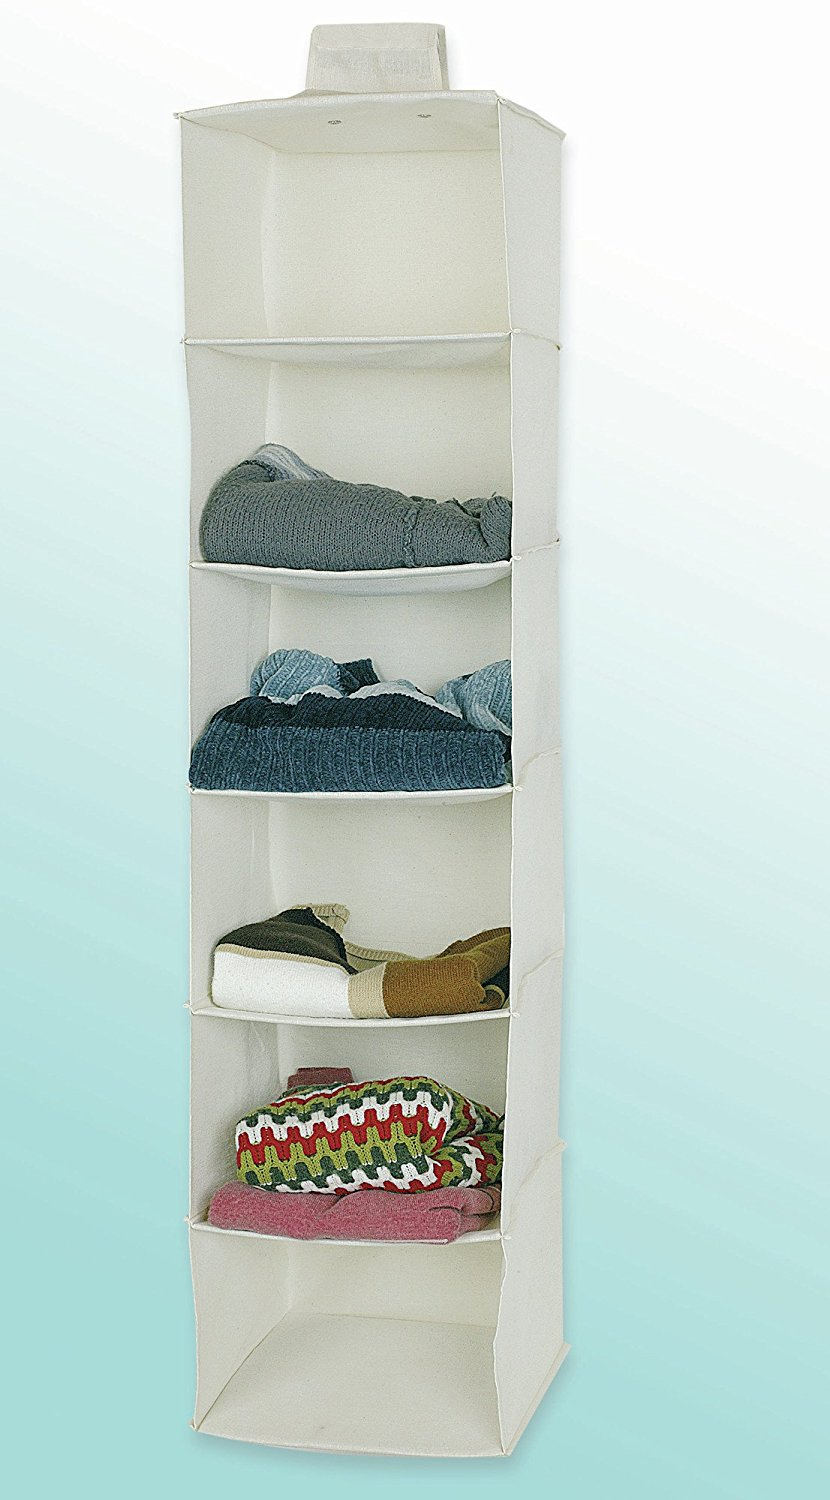 Jocca 6 Shelves Hanging Organizer For Clothes Wardrobe Or